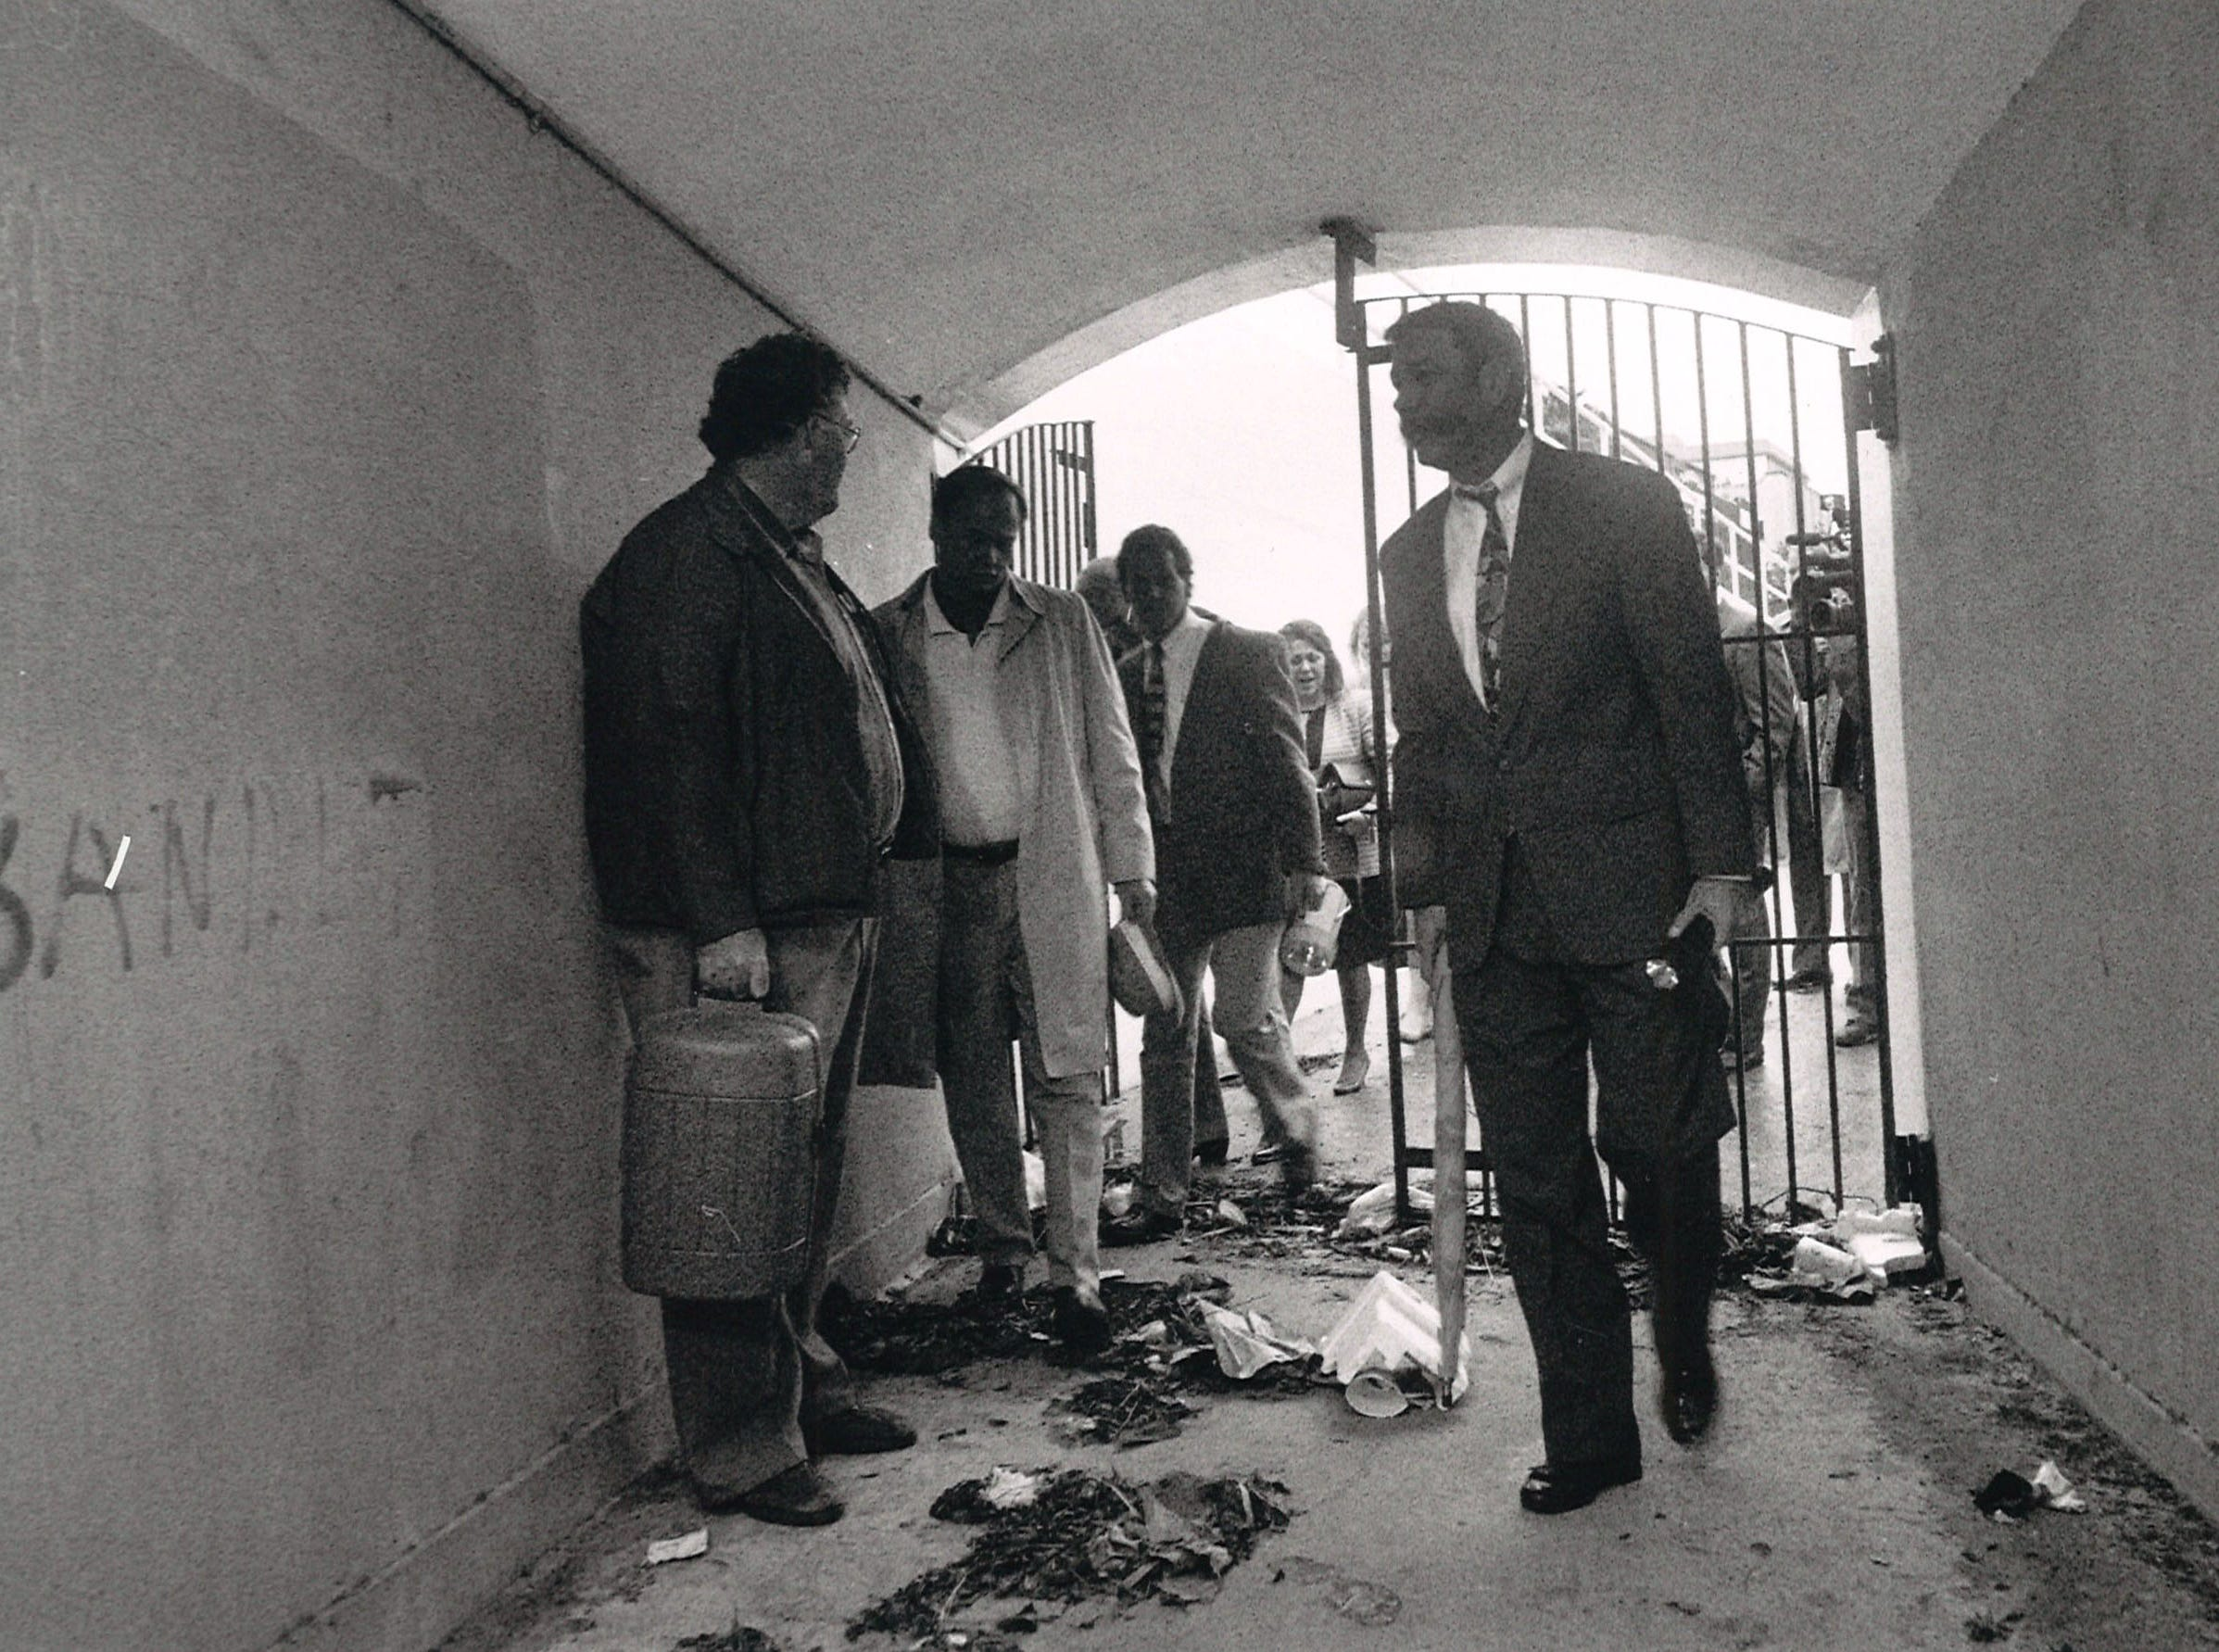 Heart of Corpus Christi president Kevin Walker (right) along with members of the organization's Public Space Management Committee and building managers from the Wilson Building, First City Tower and the 600 Building enter the bluff tunnel for a tour in April 1991 to determine the measures needed to reopen the tunnel.